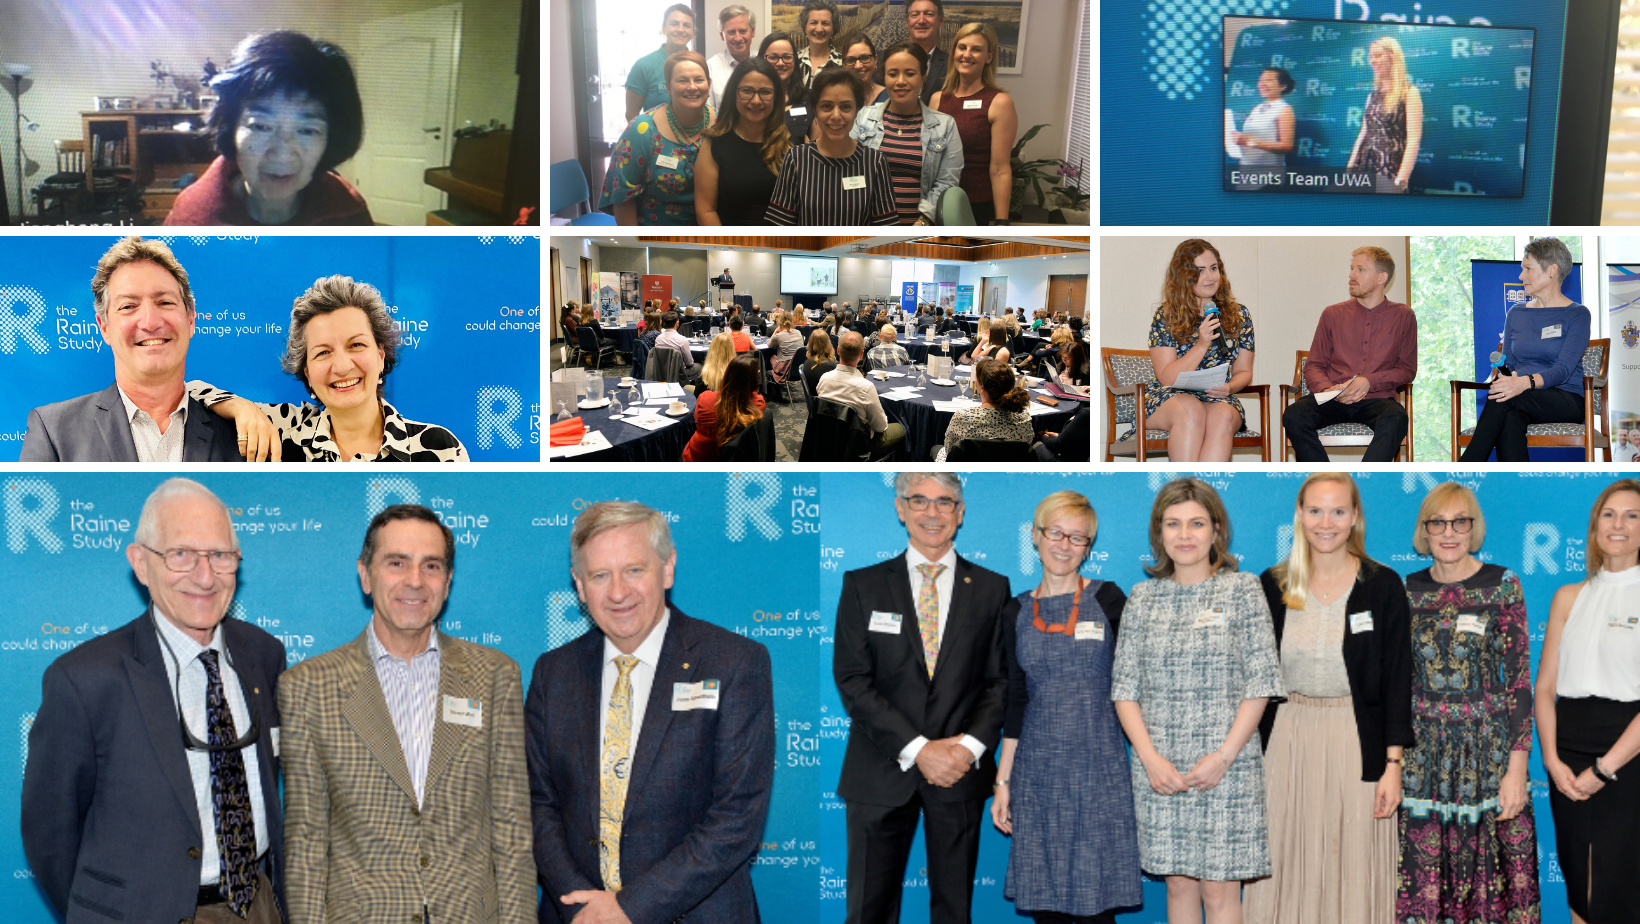 Images from the Raine Study's Annual Scientific Meeting